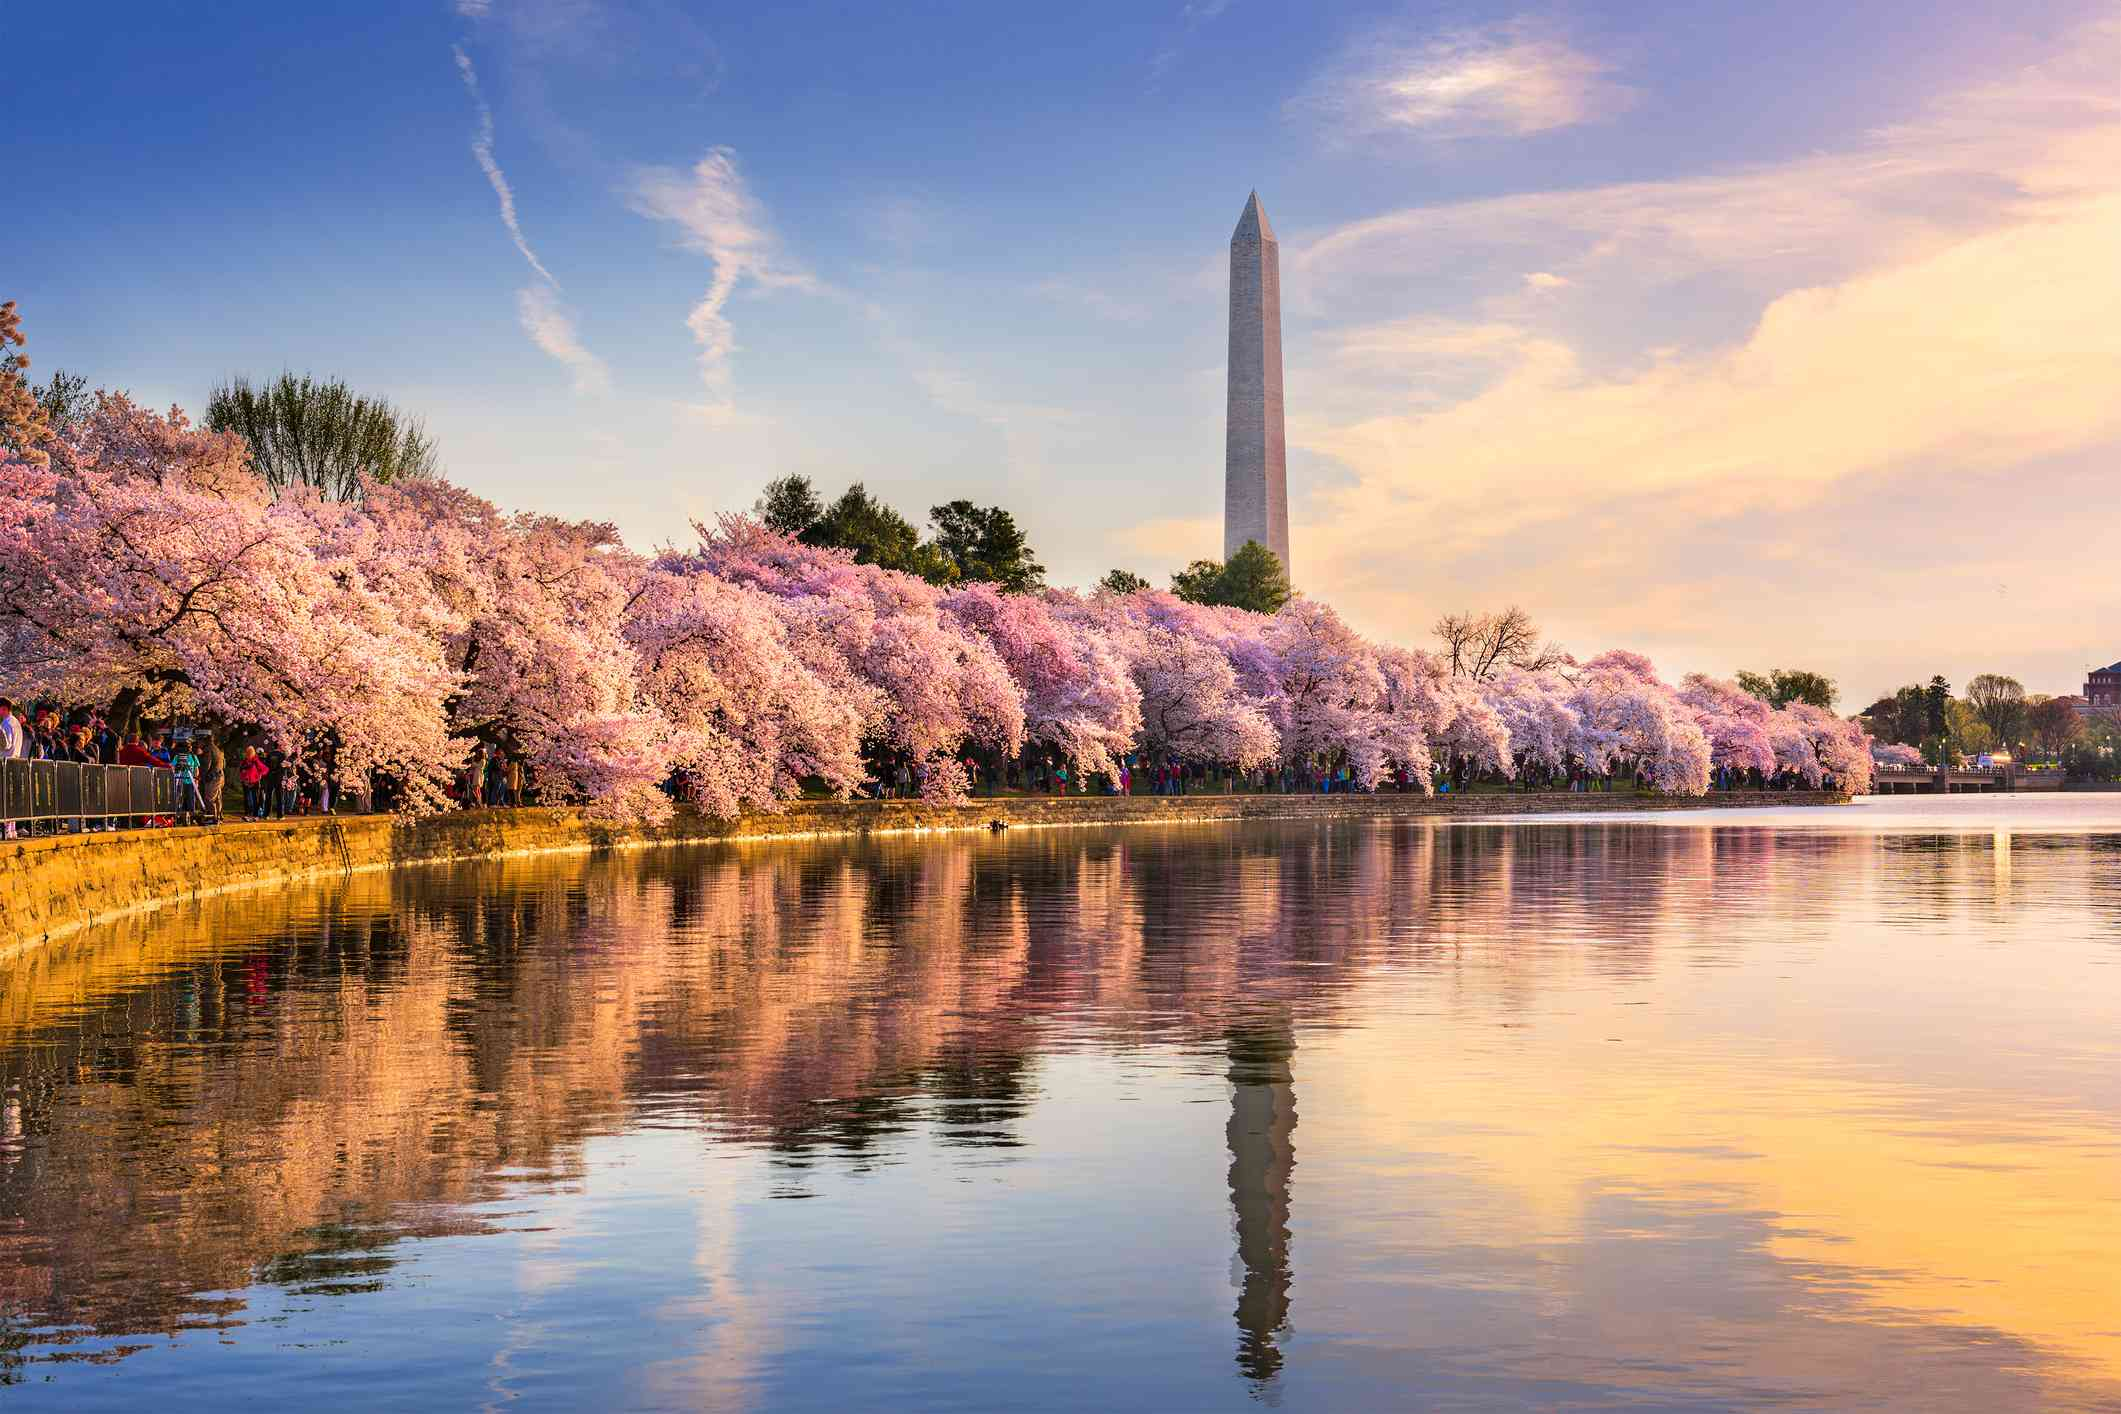 Cherry blossom trees in full bloom along the water with the Washington Monument in the distance under a blue sky